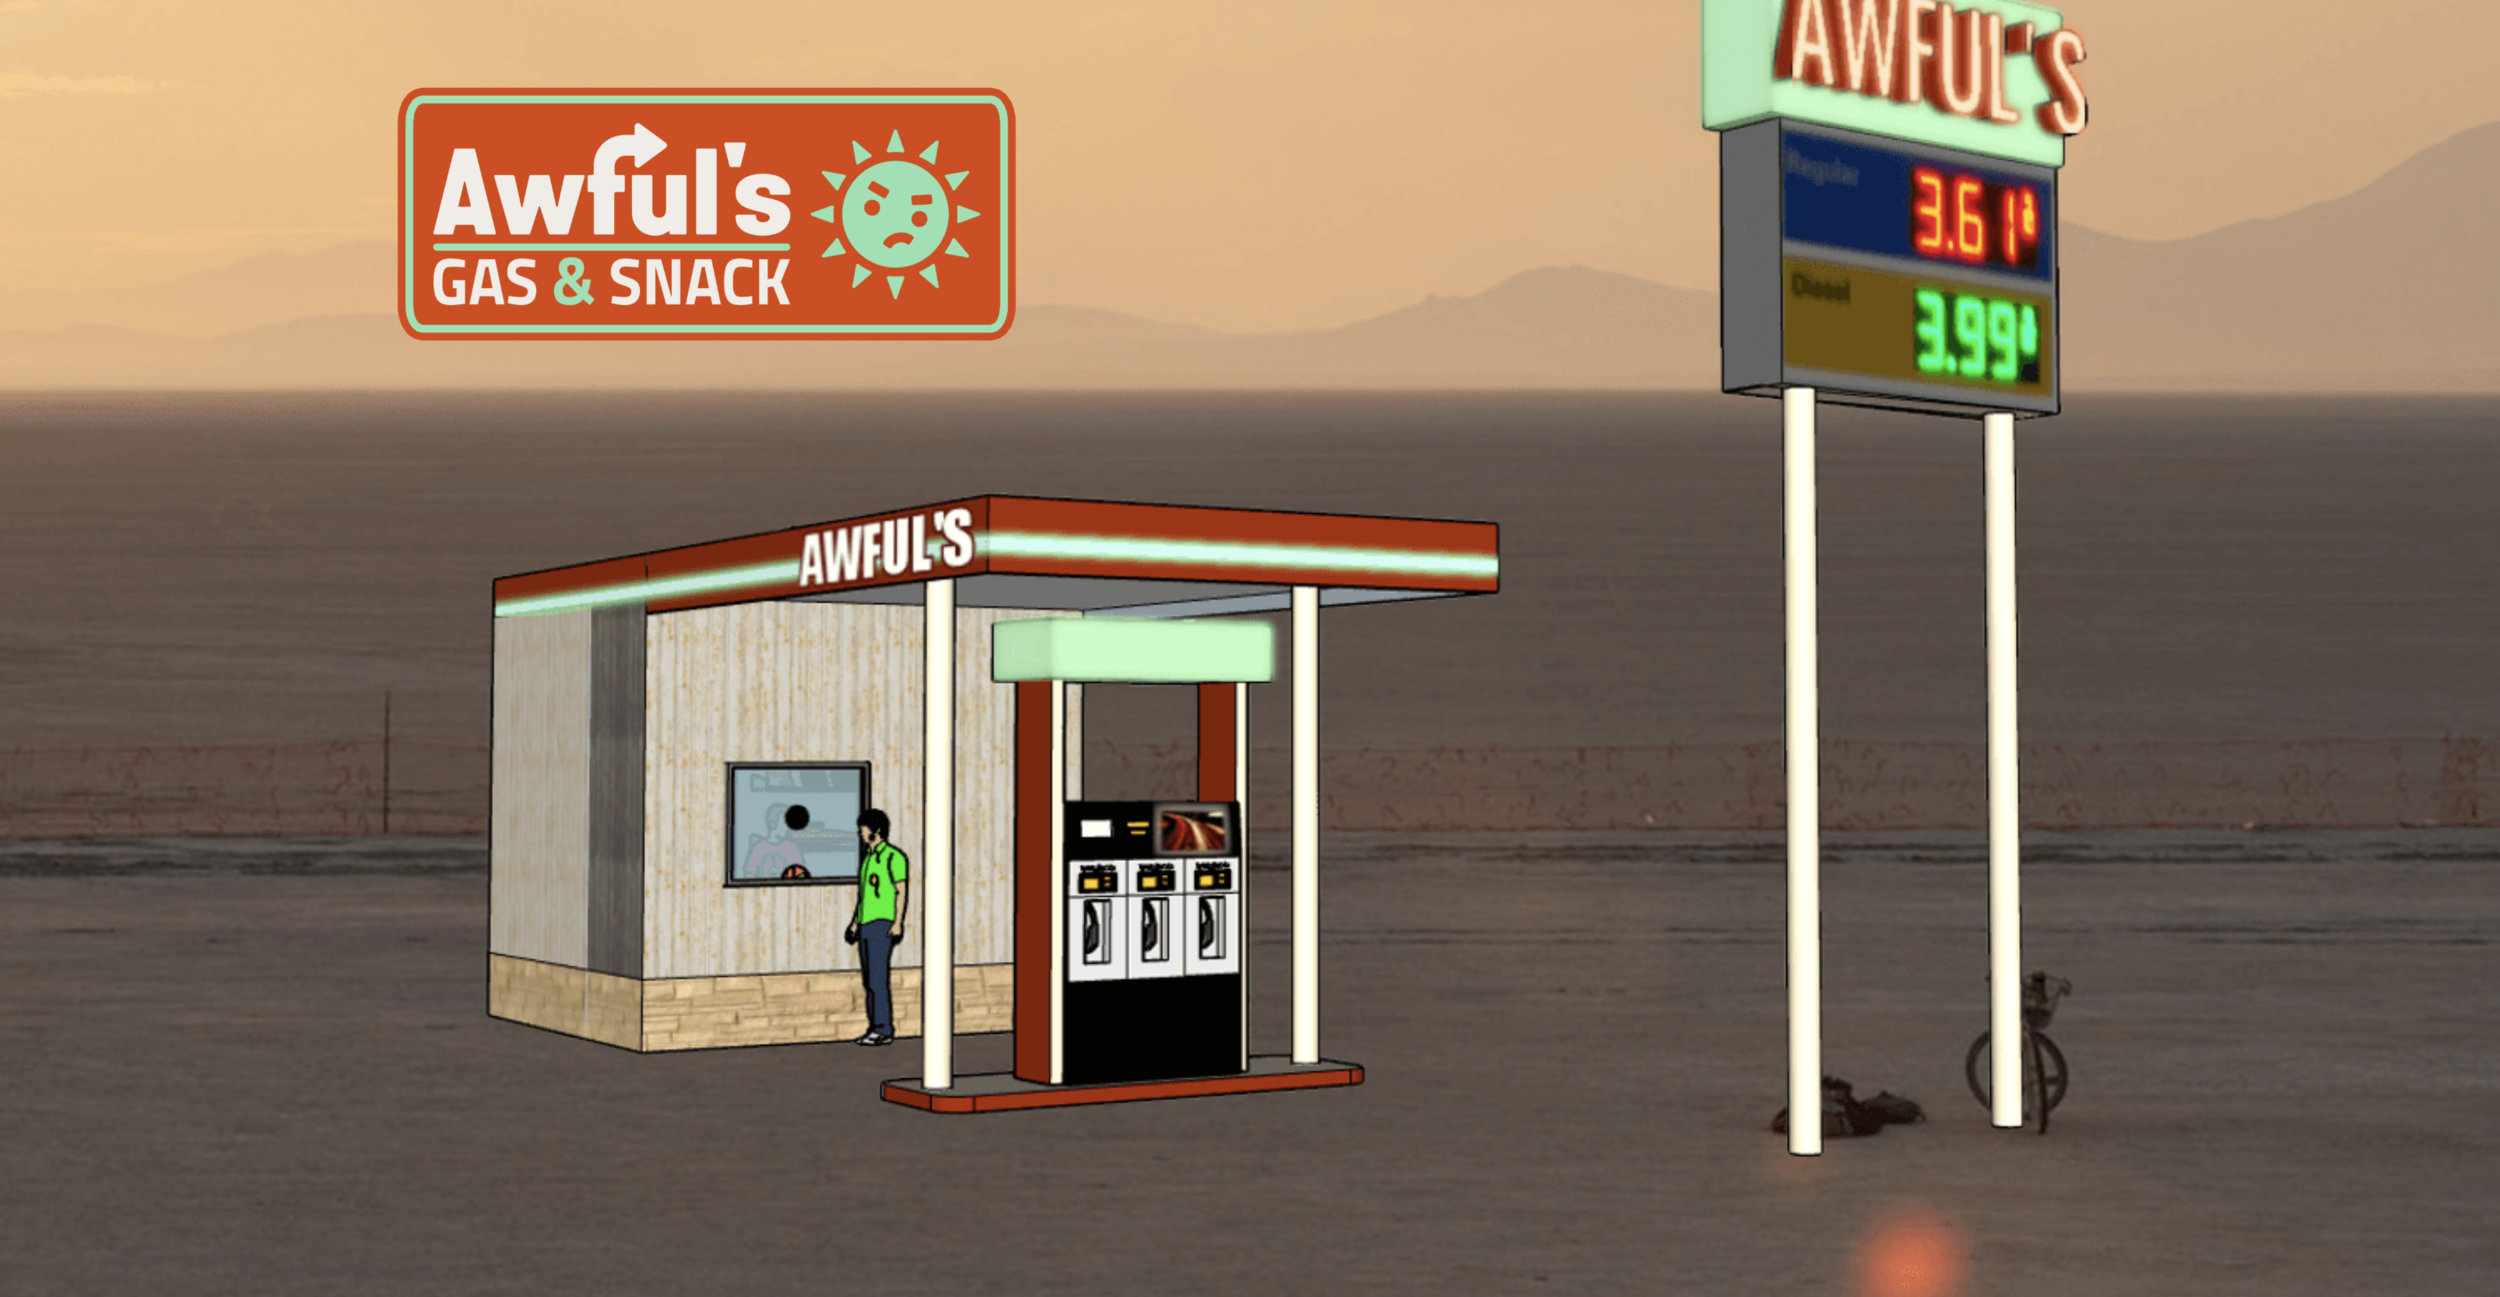 Matthew Gerring's Awful's Gas & Snack